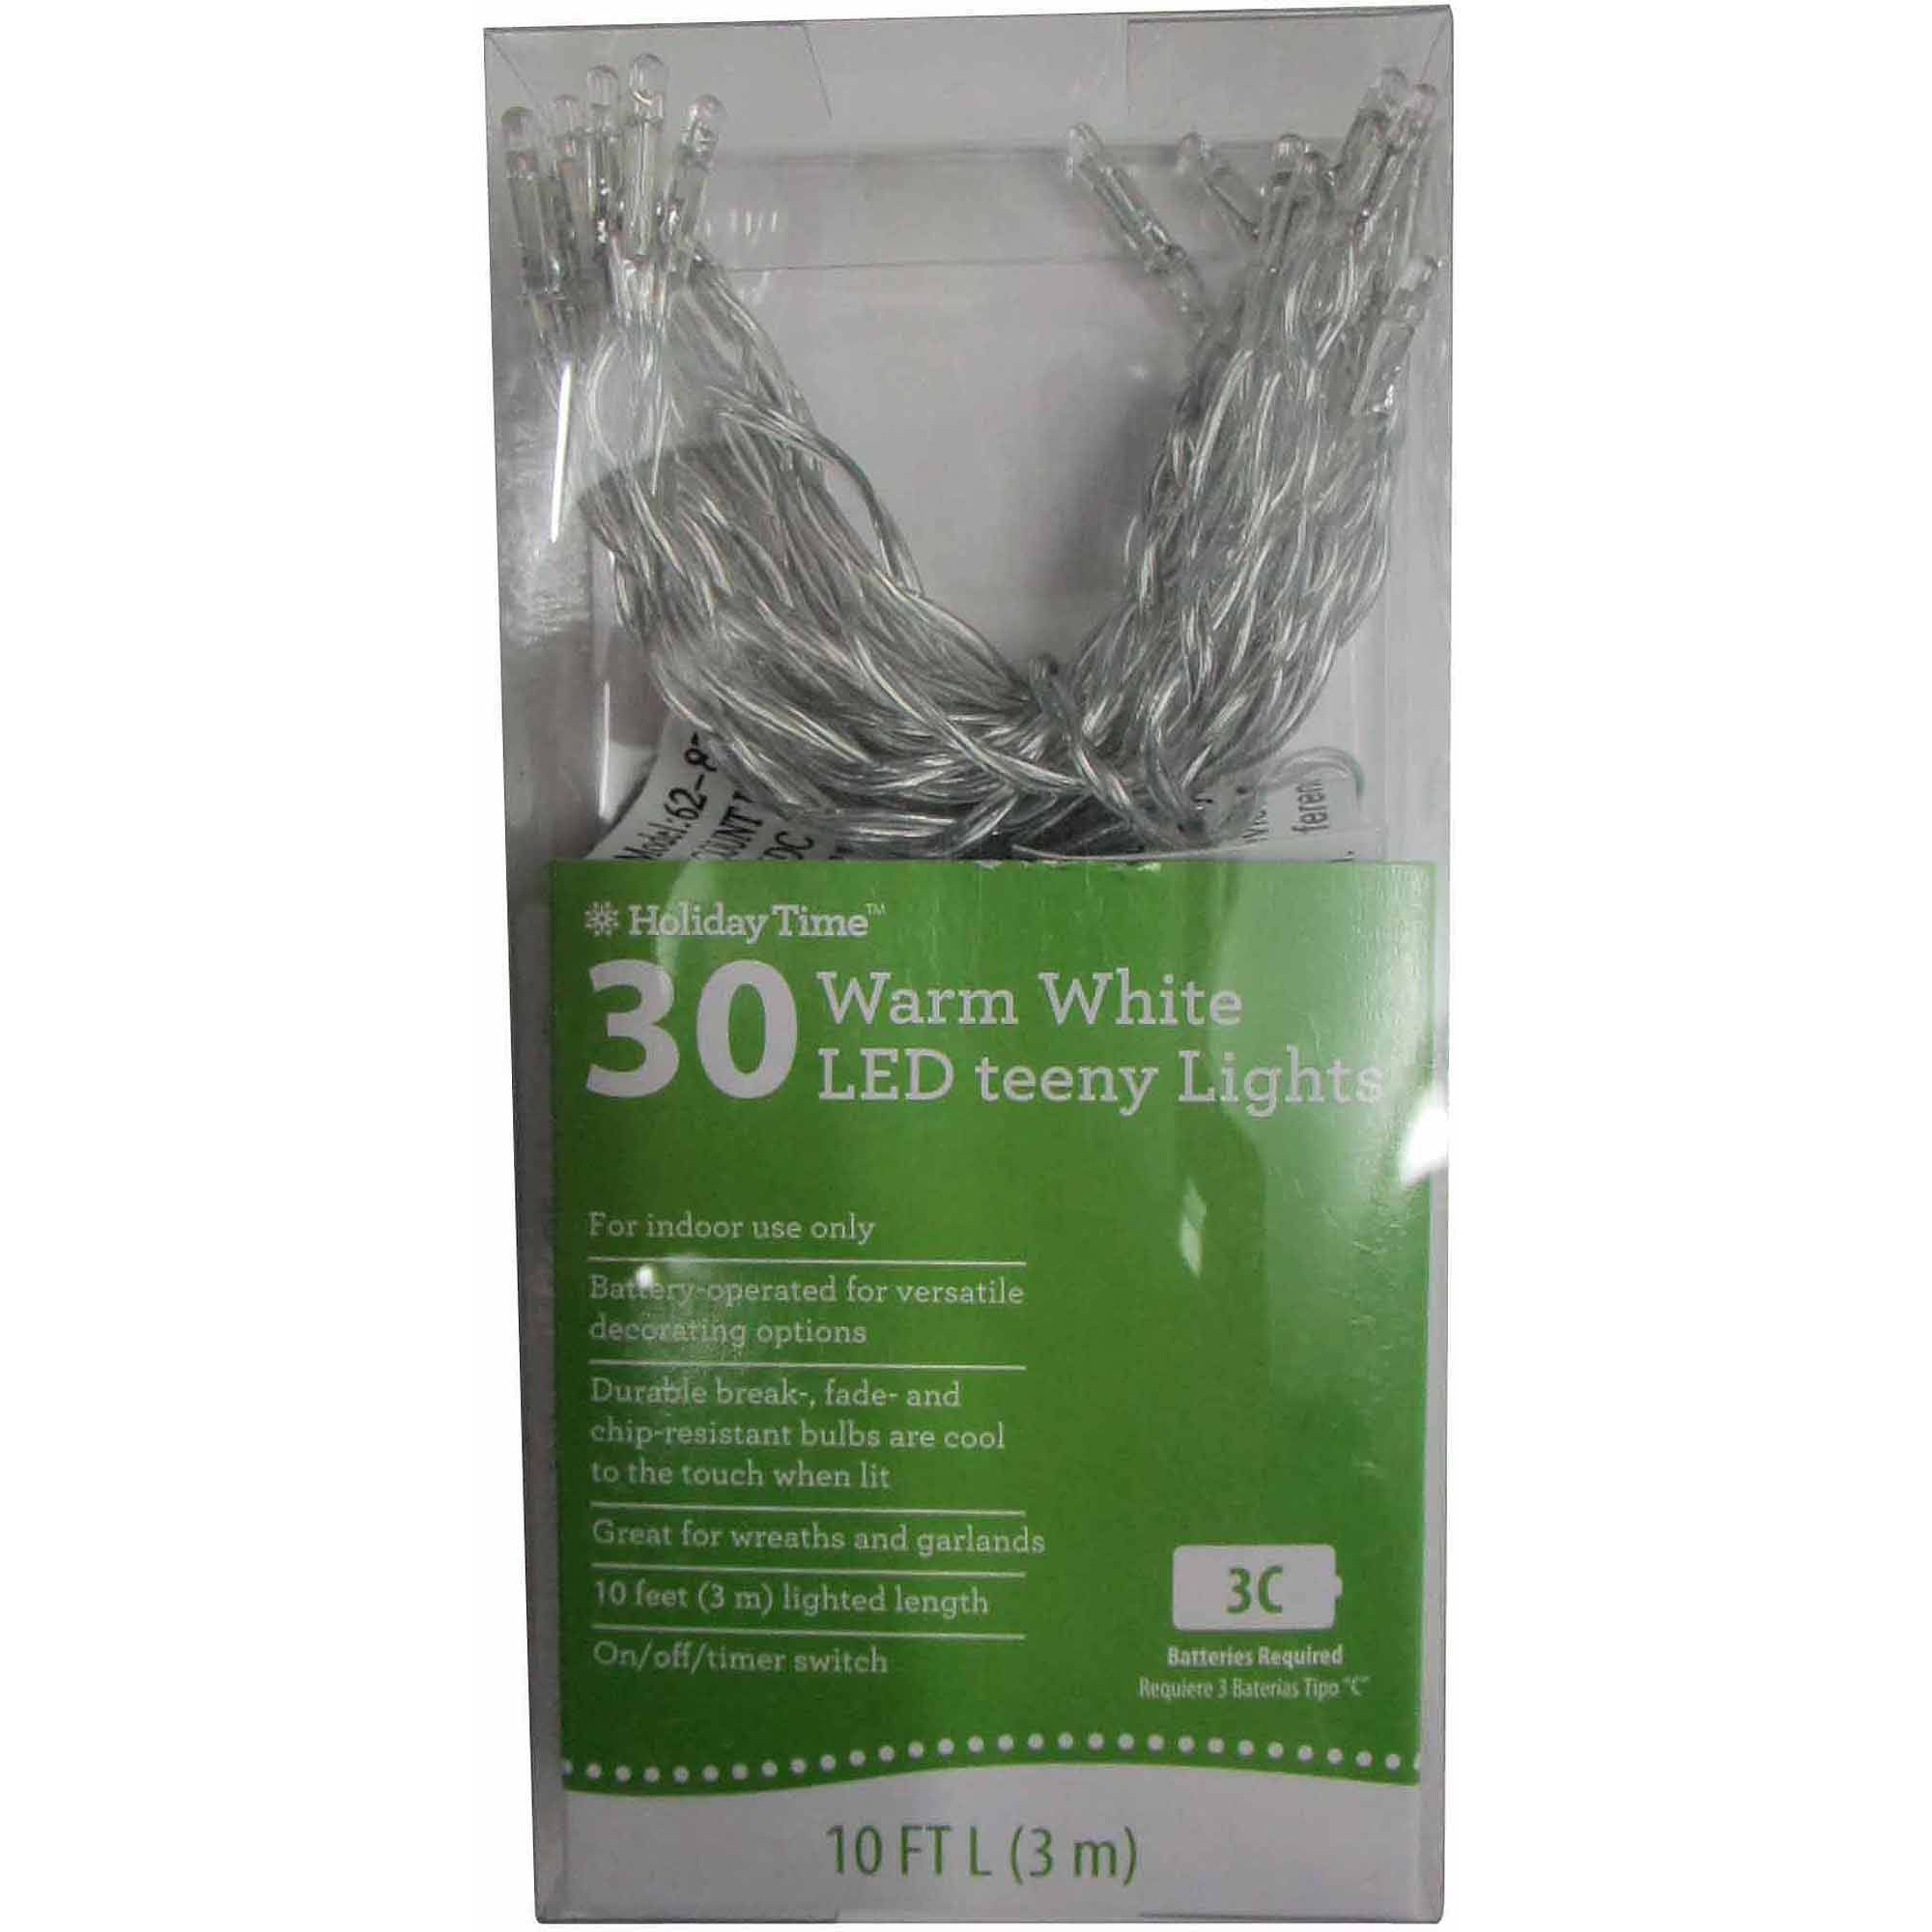 Led Lights At Walmart Holiday Time Battery Operated Led Light Set Warm White Bulb 30 Count